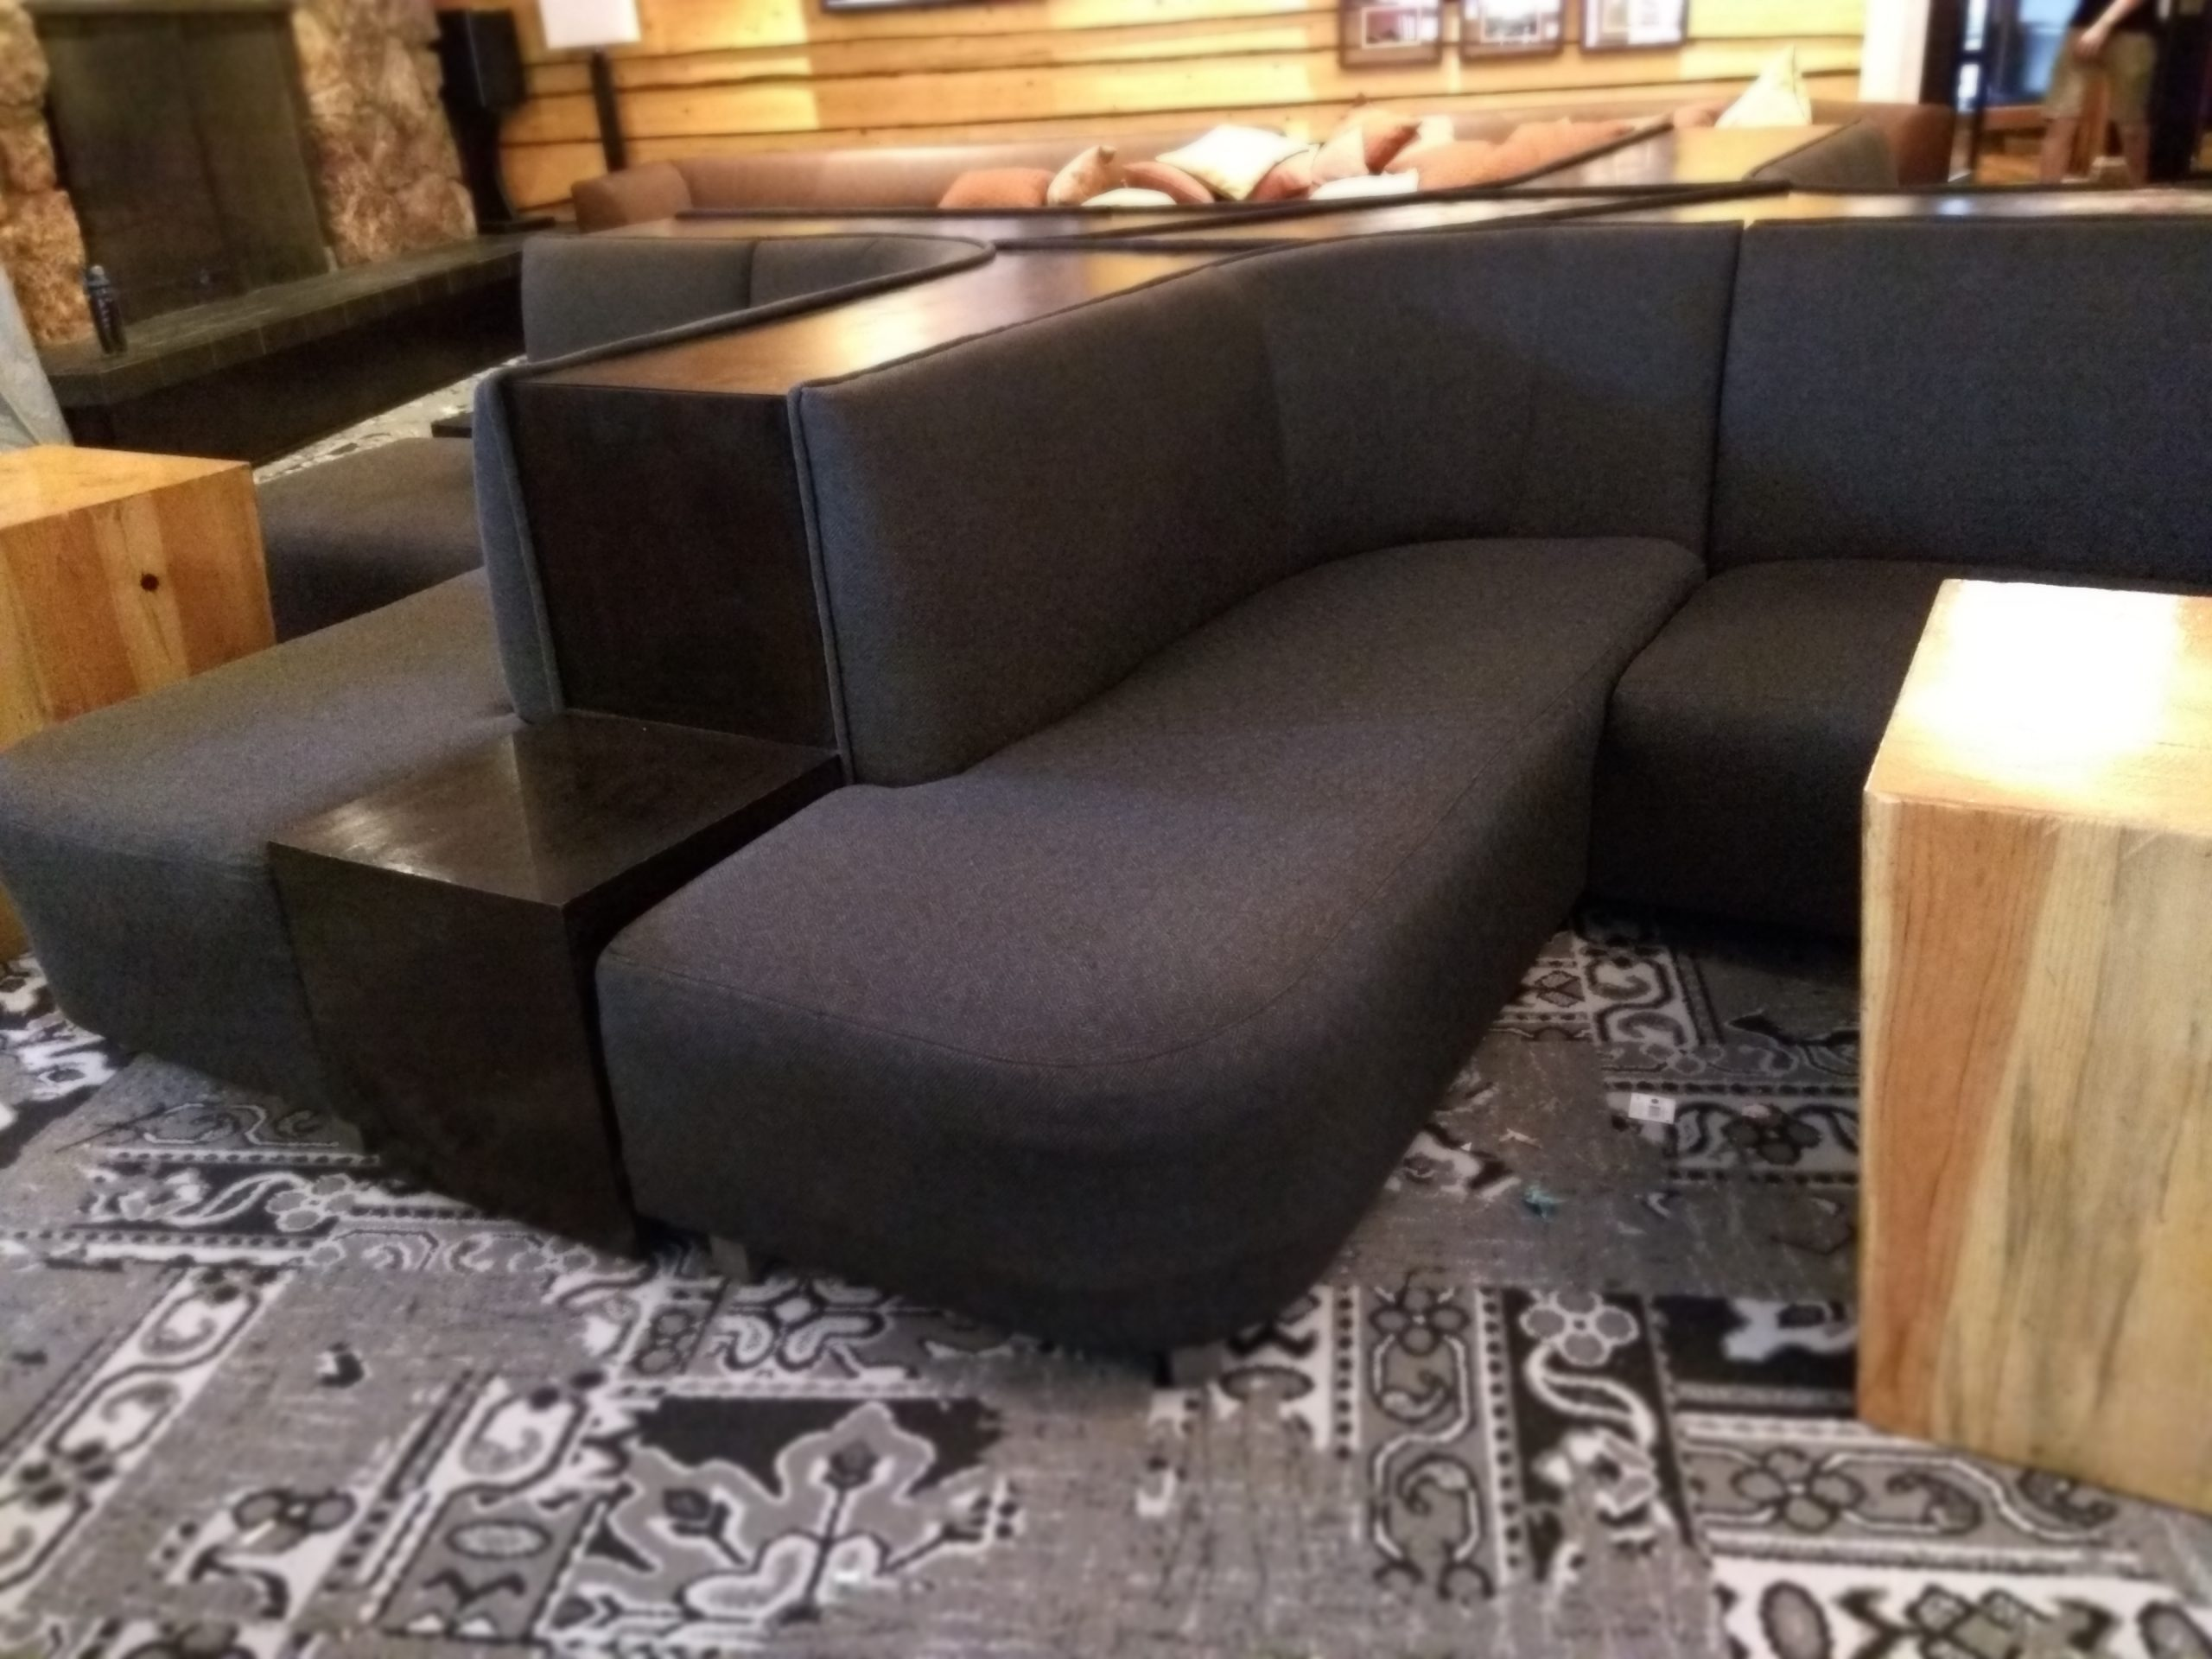 Four Sided Curved Lounge Upholstery Restaurant Booth Seat and Back